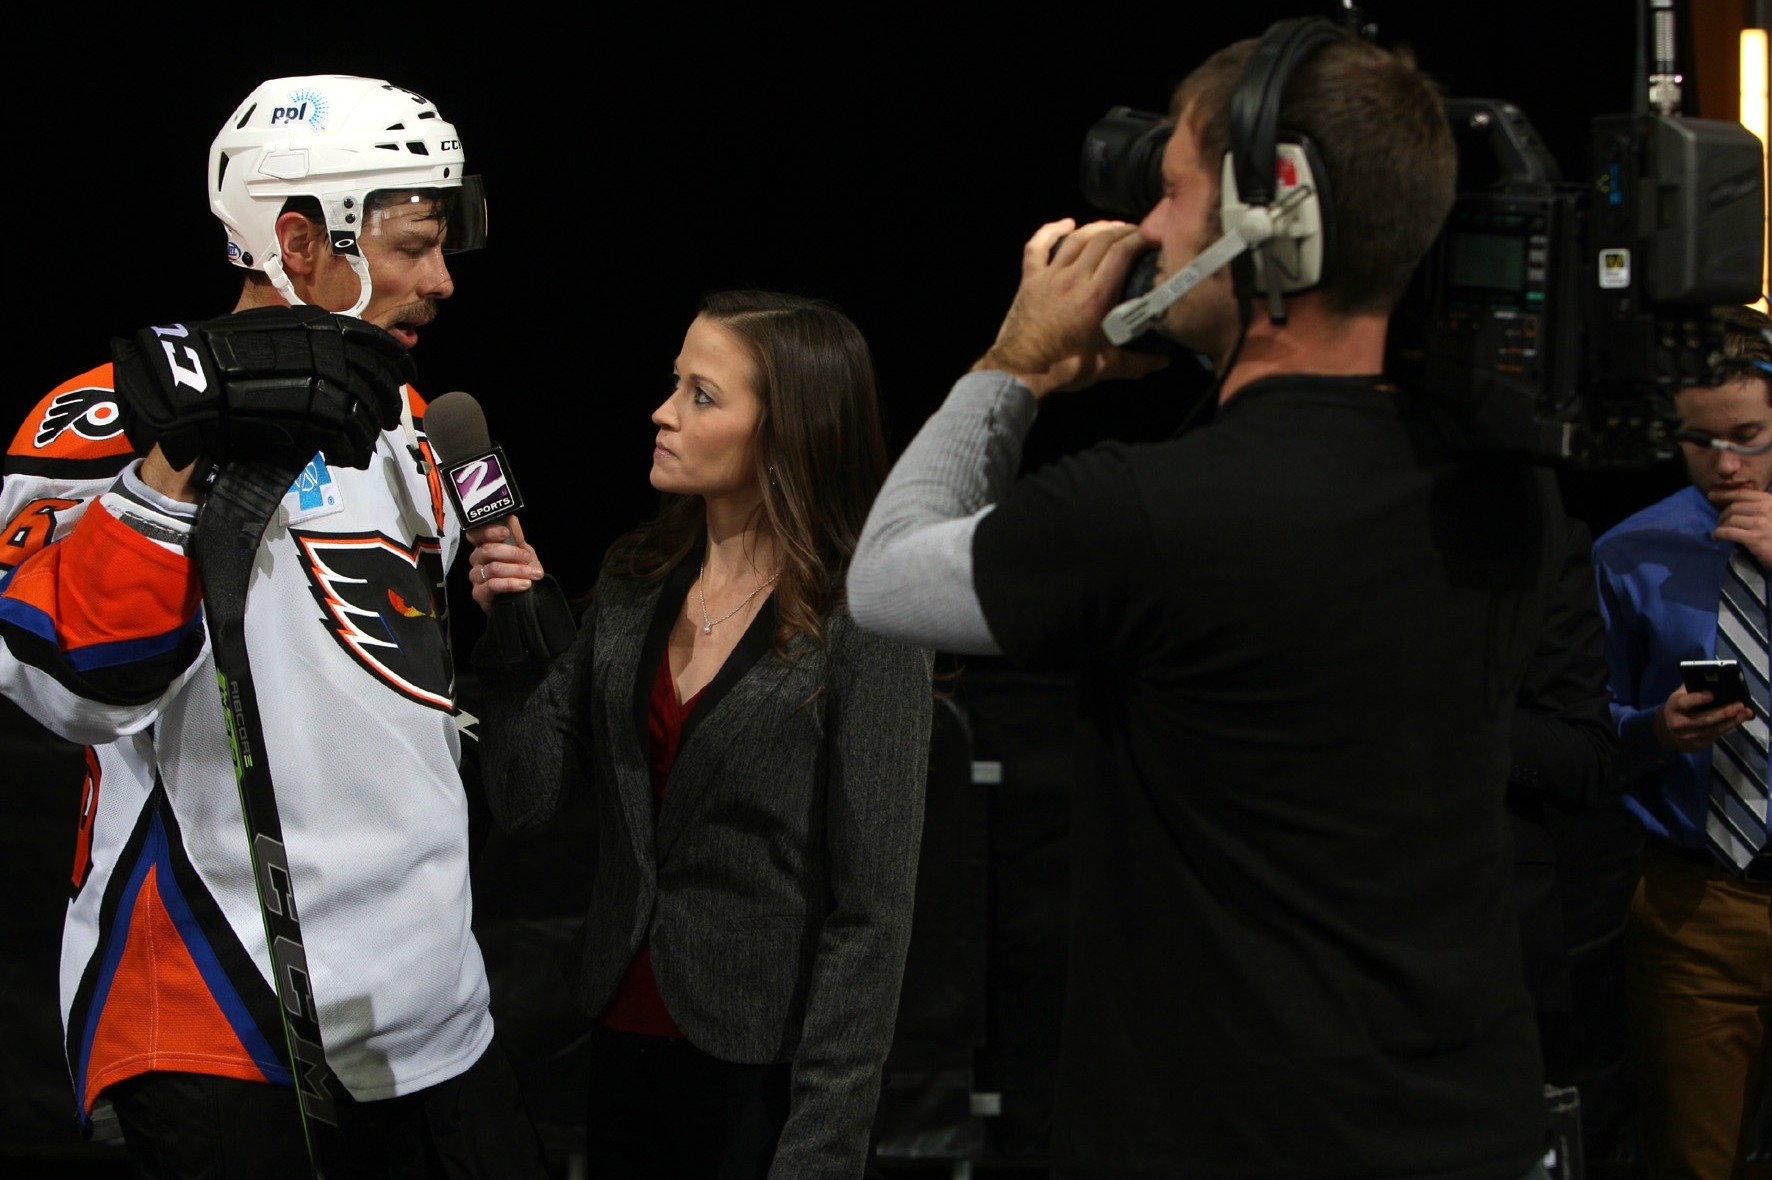 Service Electric Cable Lehigh Valley : Phantoms and service electric sports partner to broadcast